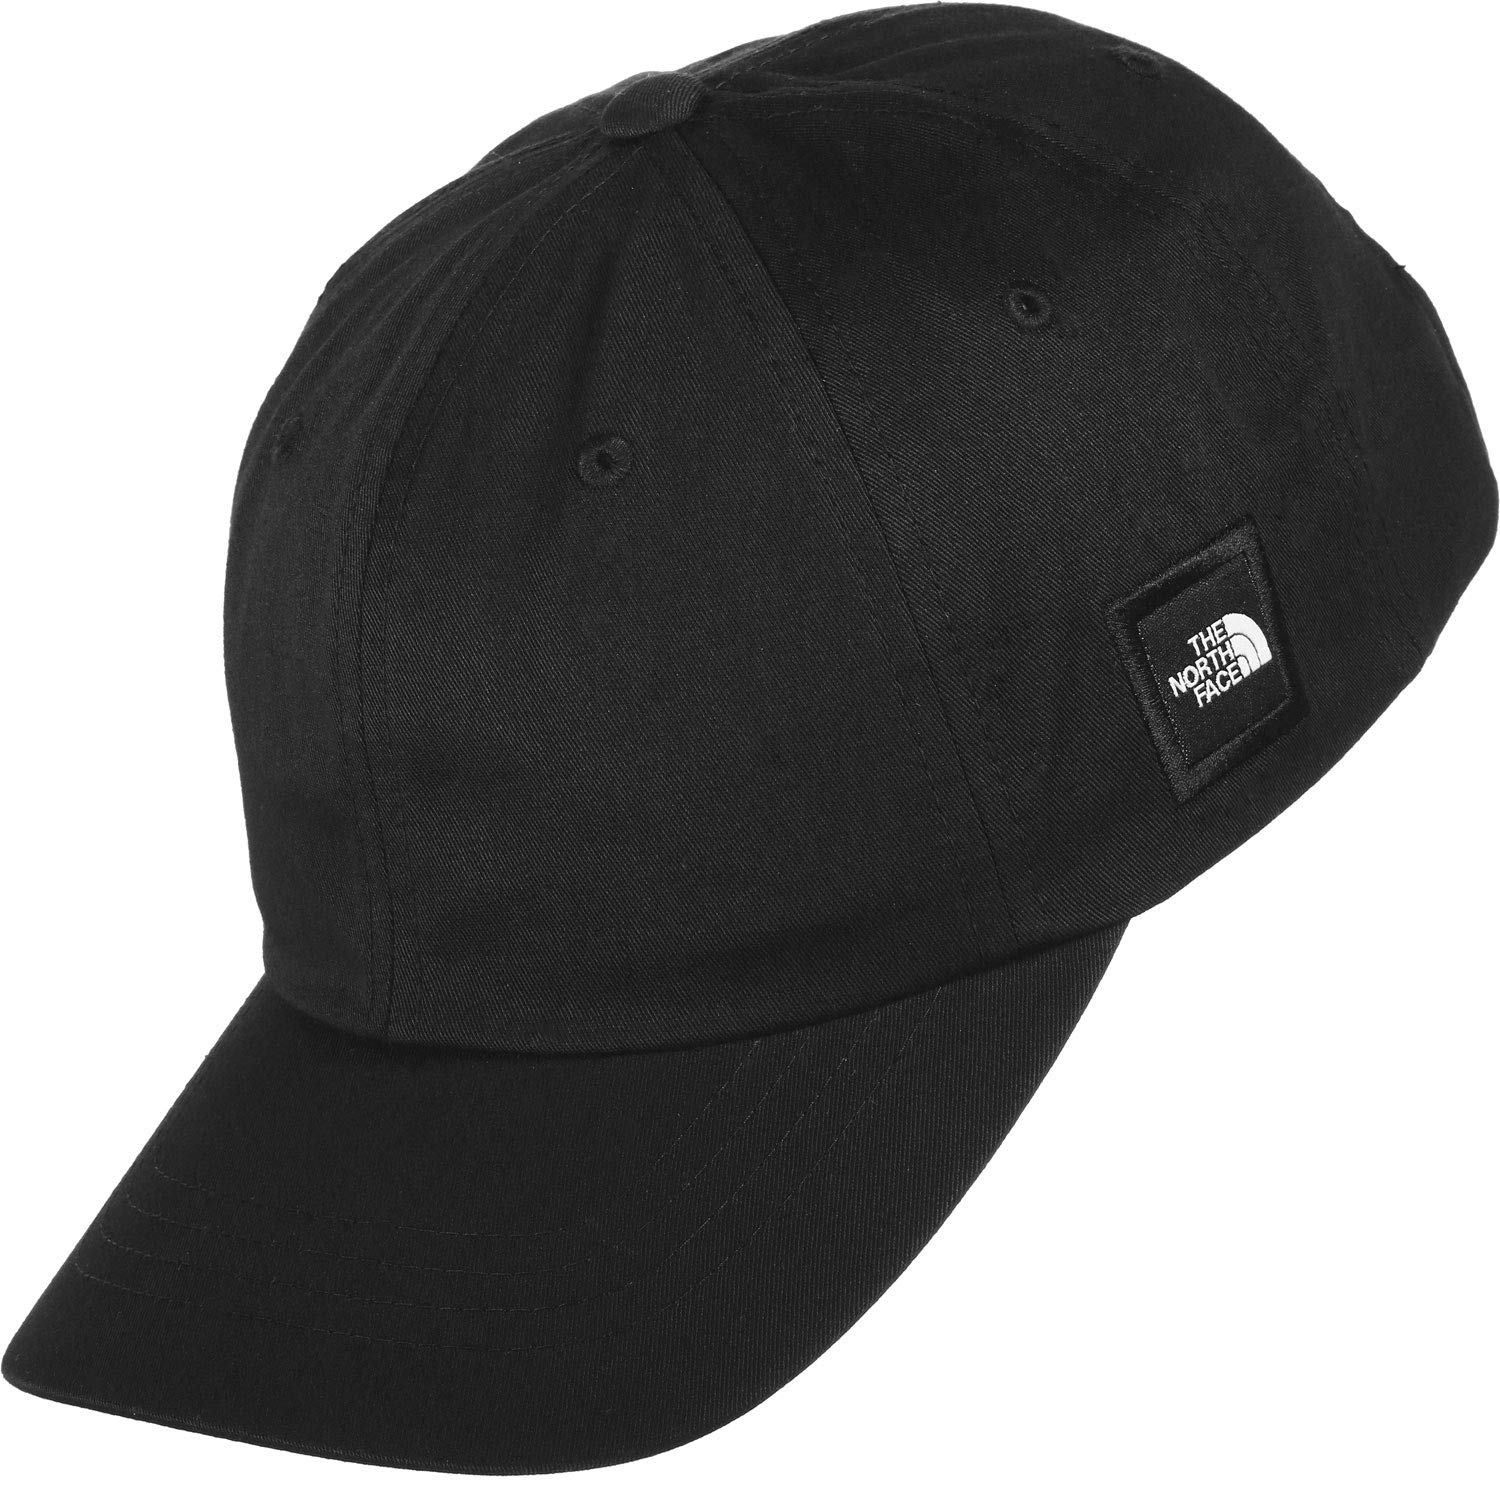 The North Face Ascentials TNF Gorras, Unisex adulto, Multicolor (Nwtpgn/Tmblwdgn), Talla única: Amazon.es: Deportes y aire libre